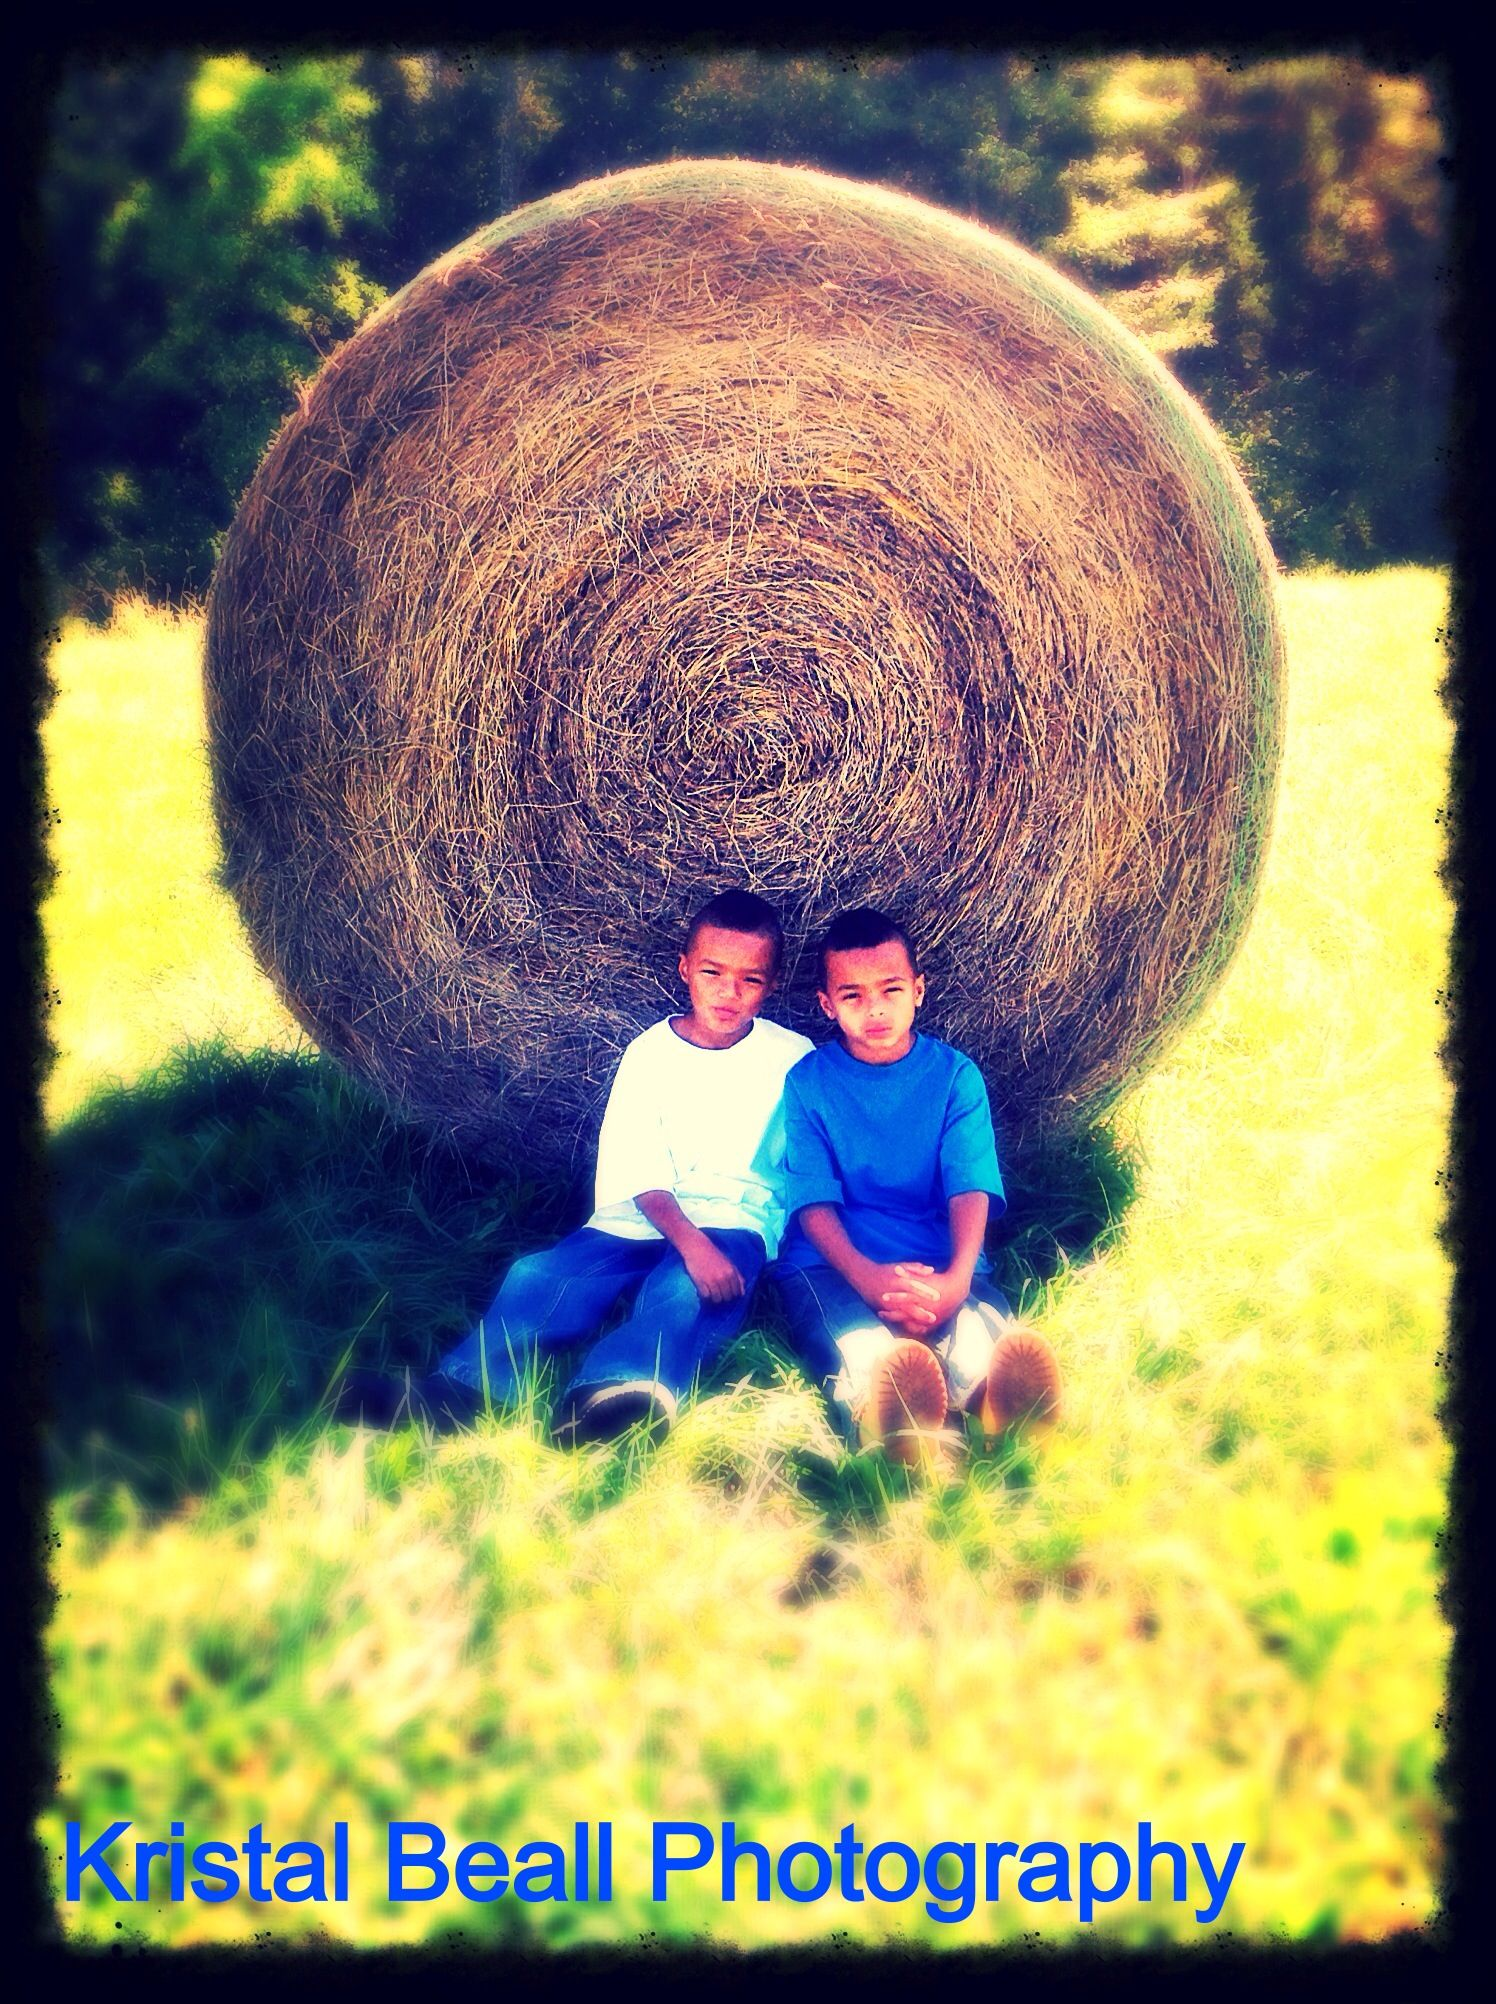 My boys. Two of my favorite subjects to photograph.